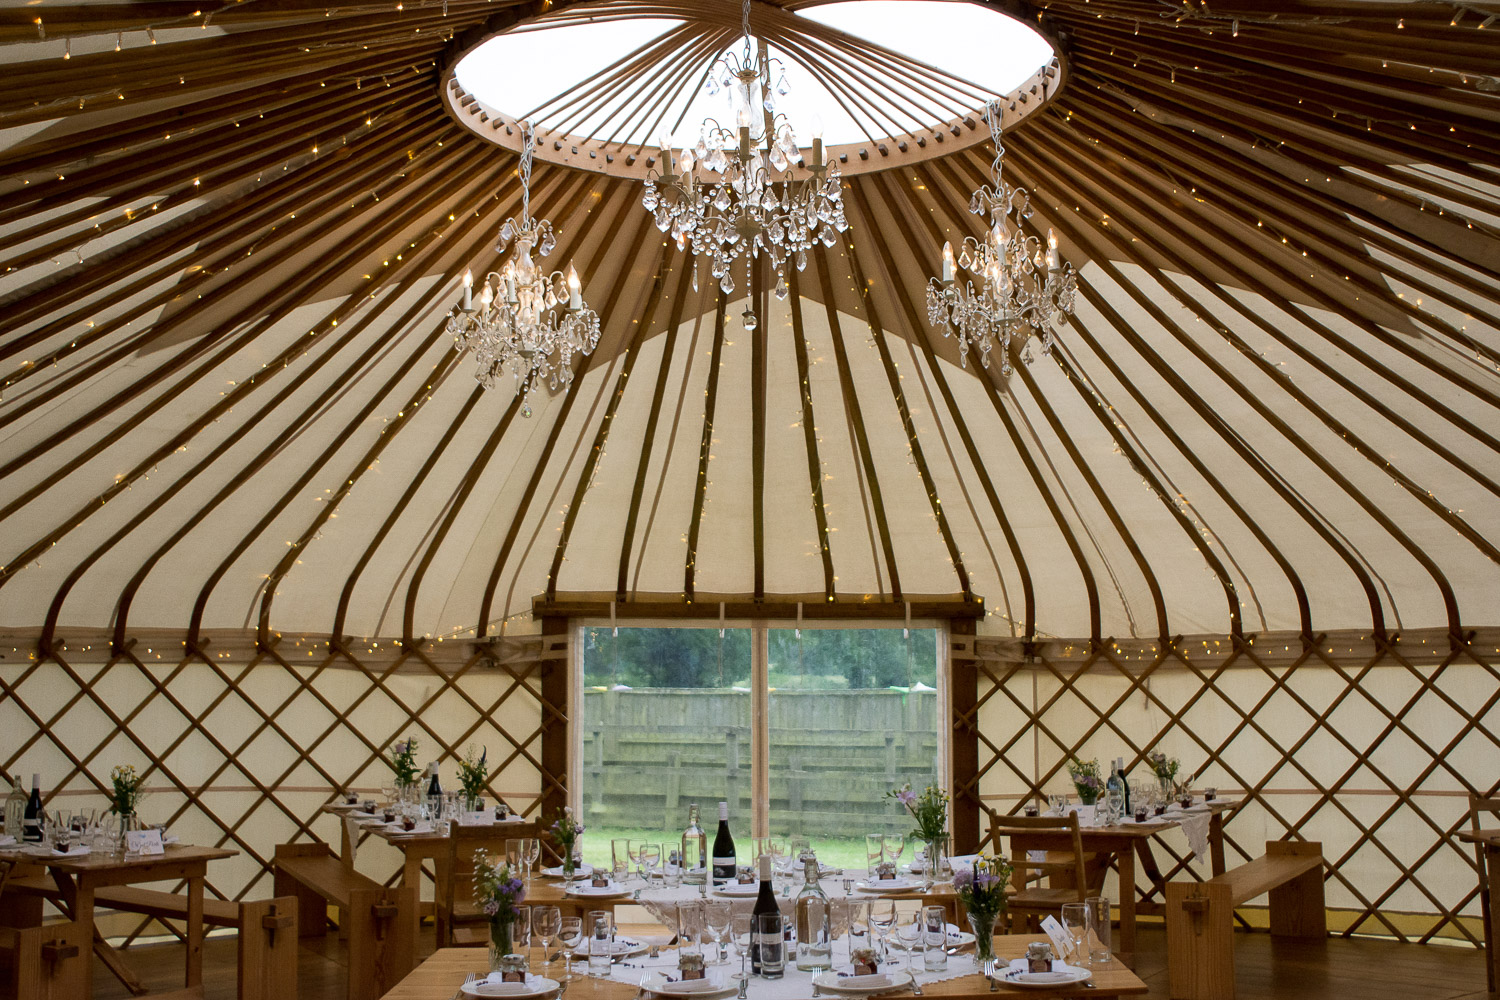 inside of the wedding yurt lit with fairy lights at wedding yurts wedding in leicestershire